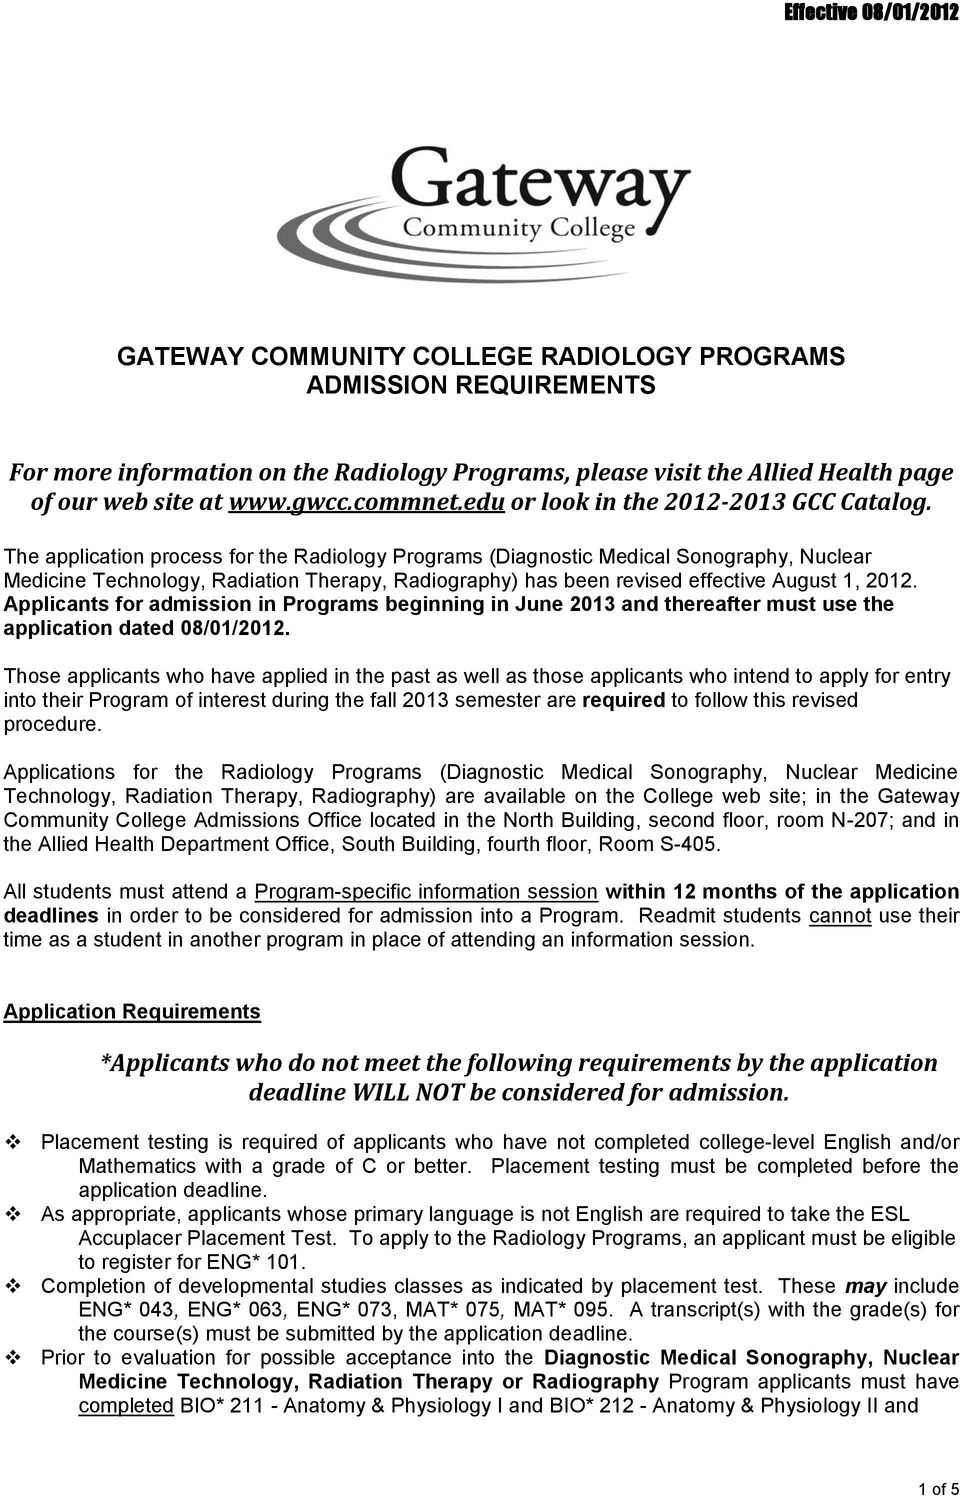 The application process for the Radiology Programs (Diagnostic Medical Sonography, Nuclear Medicine Technology, Radiation Therapy, Radiography) has been revised effective August 1, 2012.